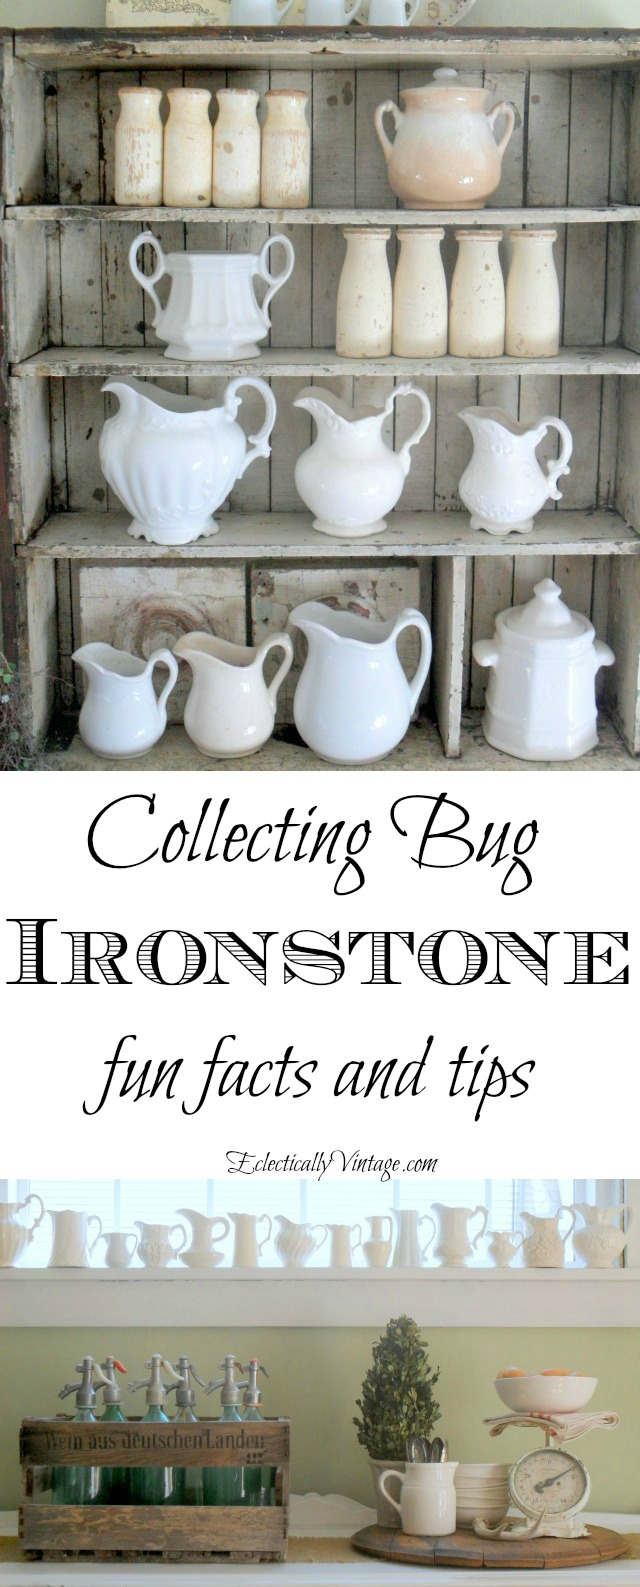 collecting bug collecting ironstone